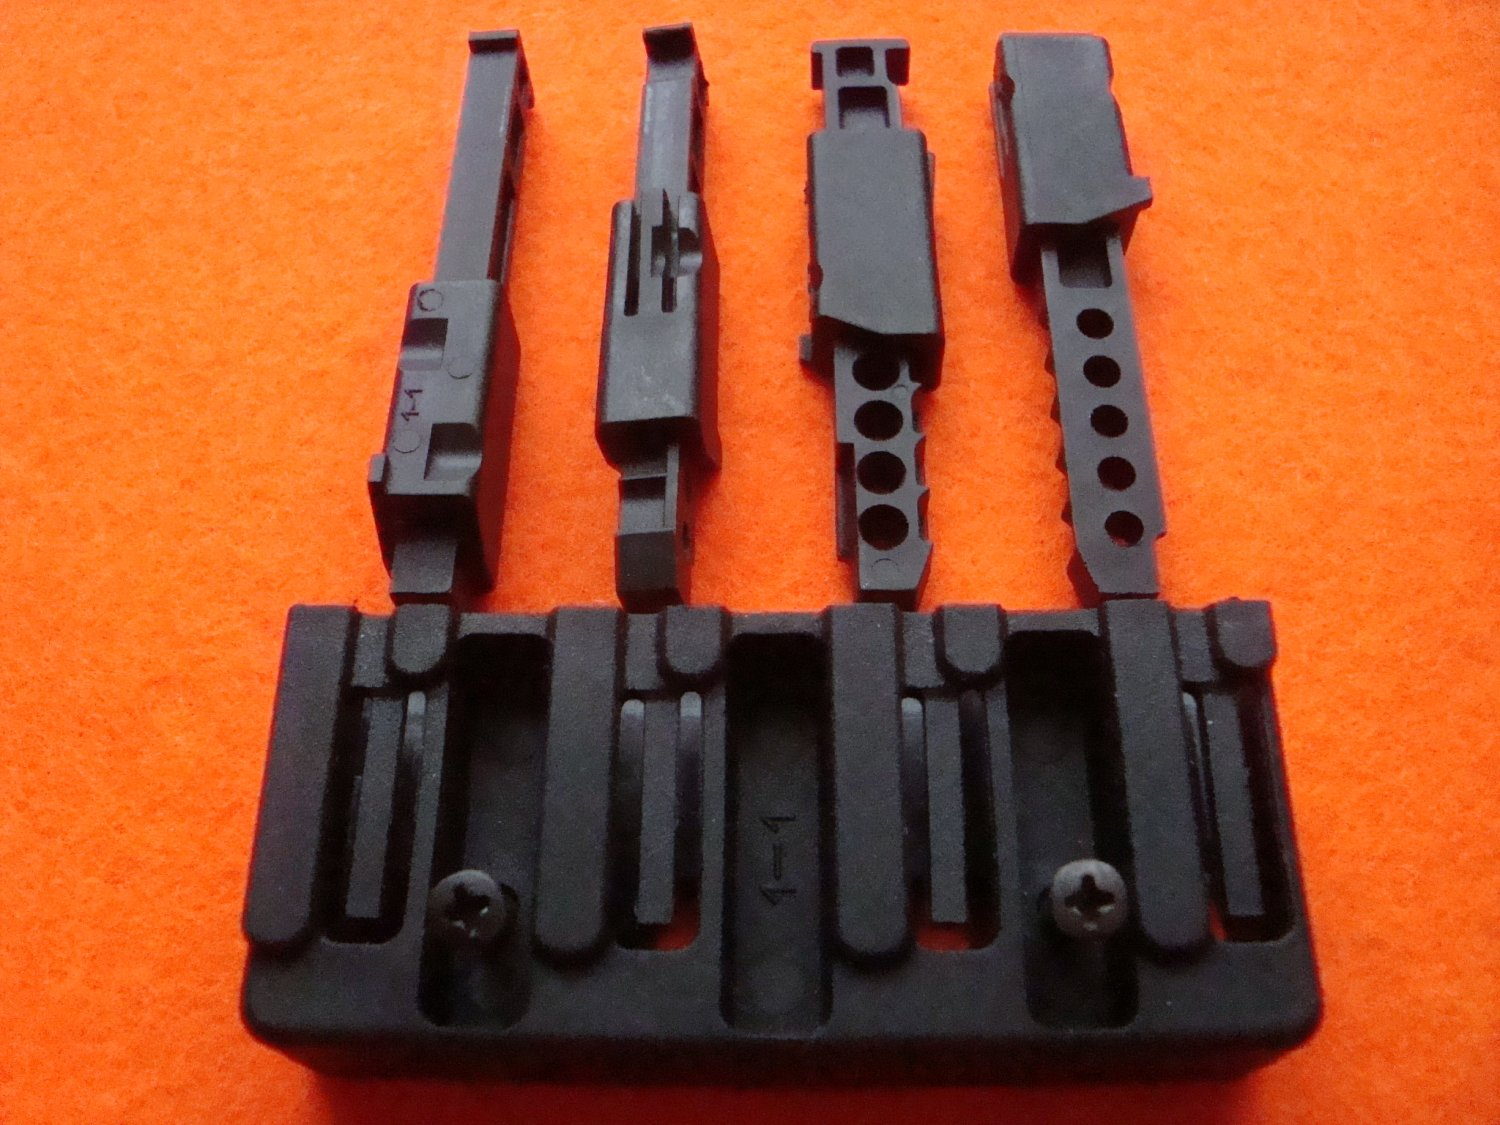 Magazine case upgrade kit for IZH-61 and MP-61, modernized advanced parts for tuning, made to order.